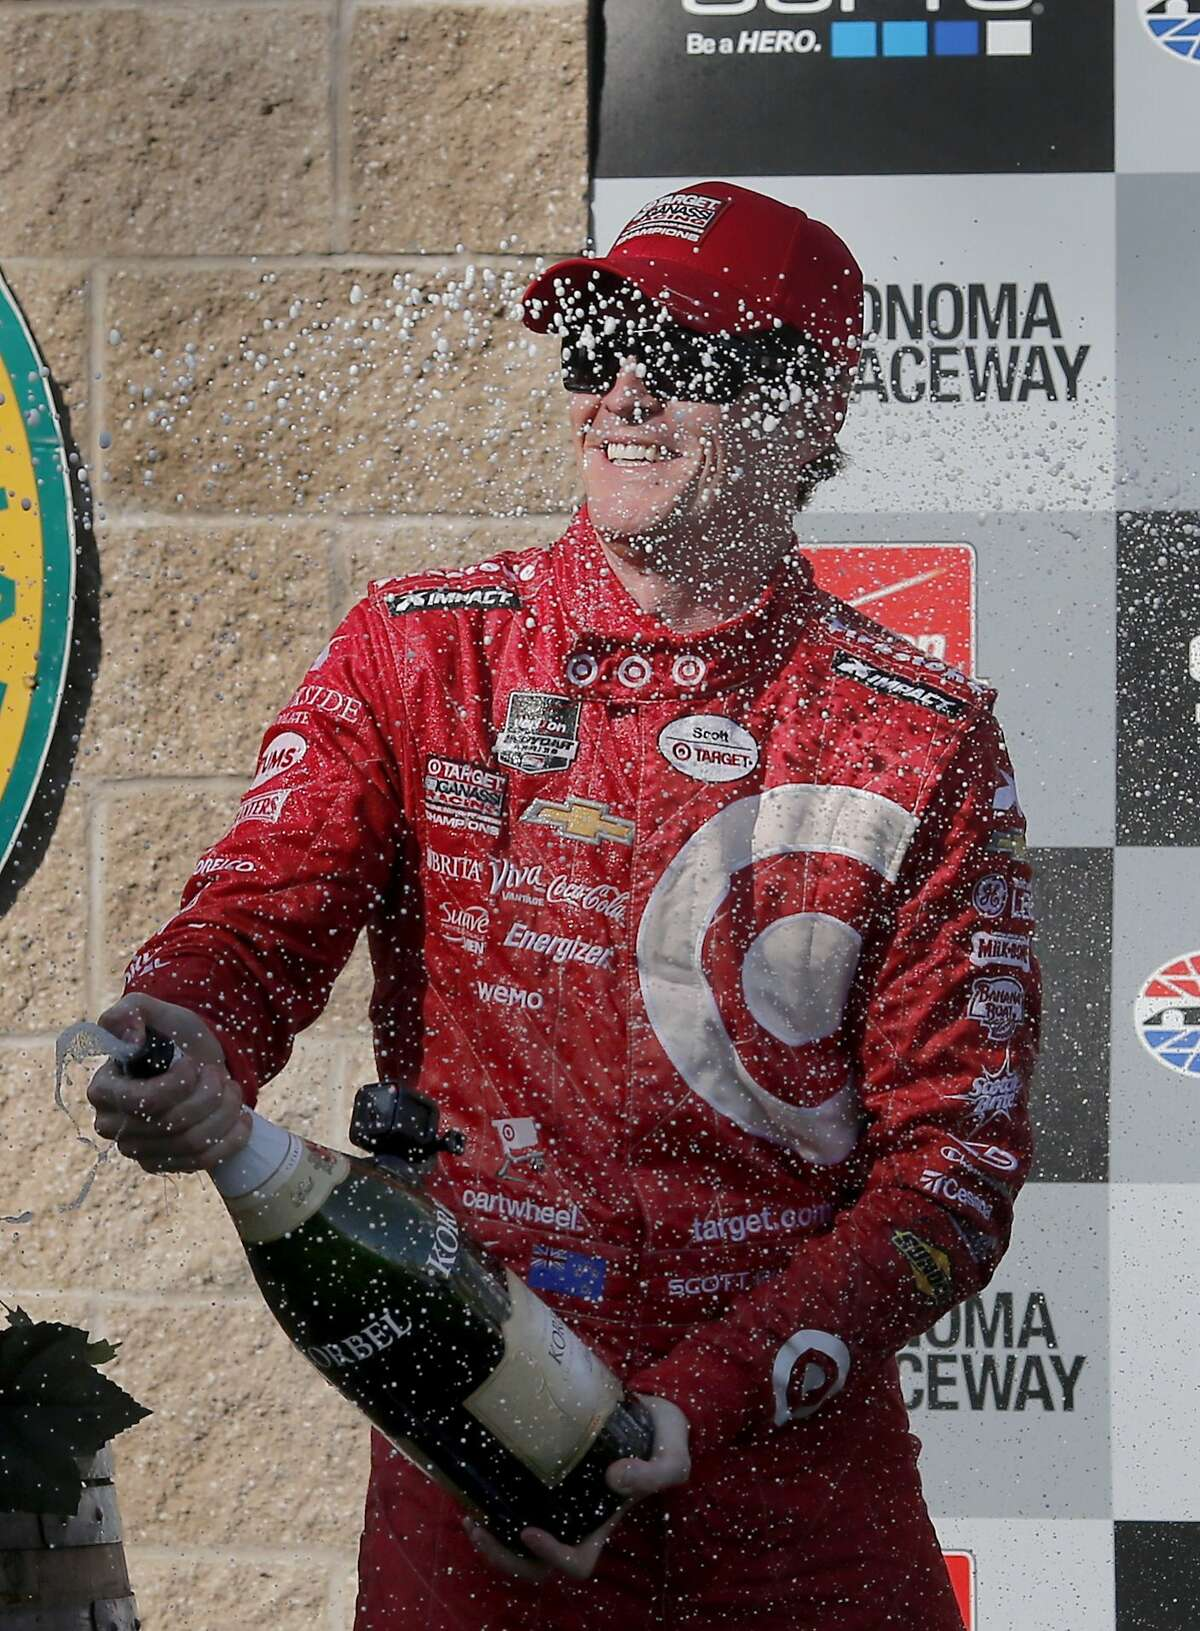 Scott Dixon celebrates with champagne after his race and season championship. Scott Dixon won the Go Pro Grand Prix of Sonoma and the overall IndyCar championship for 2015. The IndyCar GoPro Grand Prix of Sonoma attracted thousands of fans to Sonoma Raceway Sunday August 30, 2015.